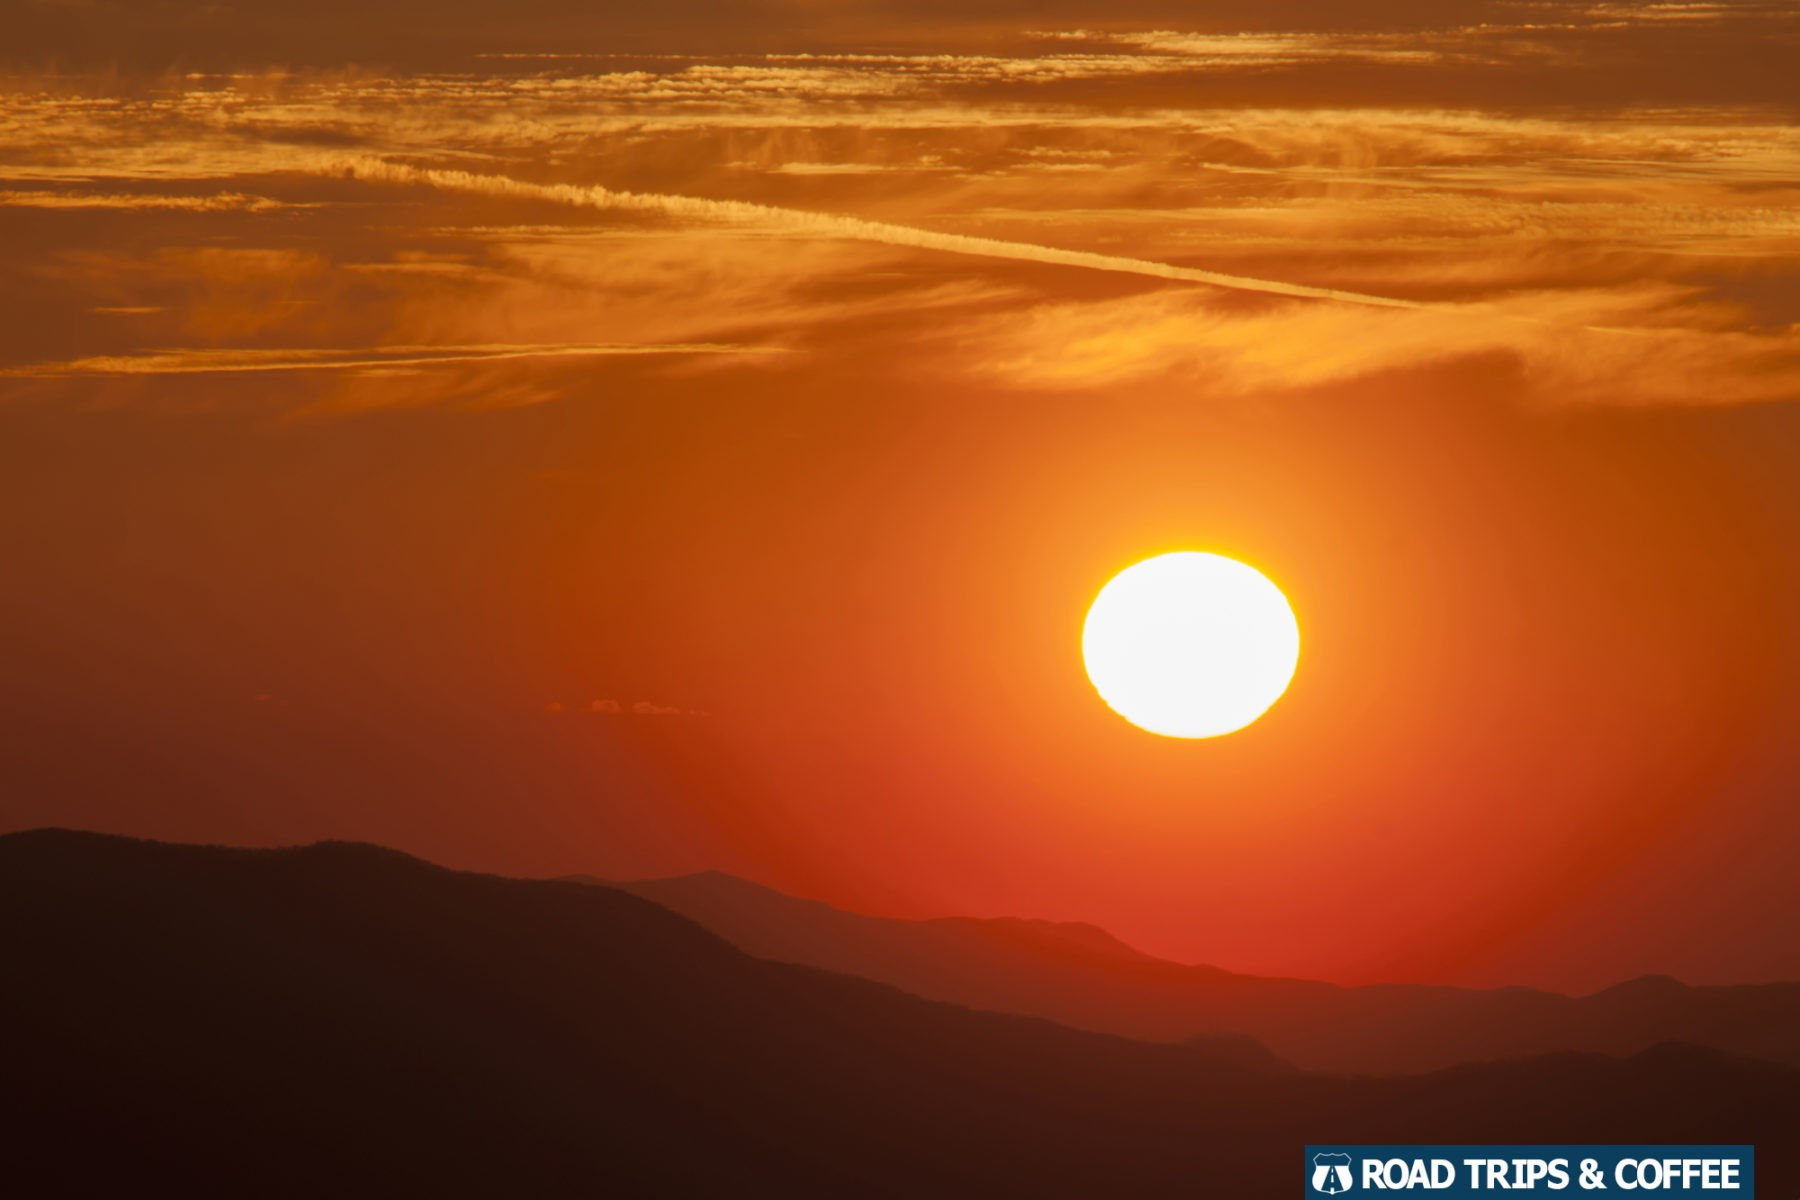 Warm orange colors cover the sky as the sun sets behind silhouetted mountains at the Cowee Mountain Overlook on the Blue Ridge Parkway in North Carolina